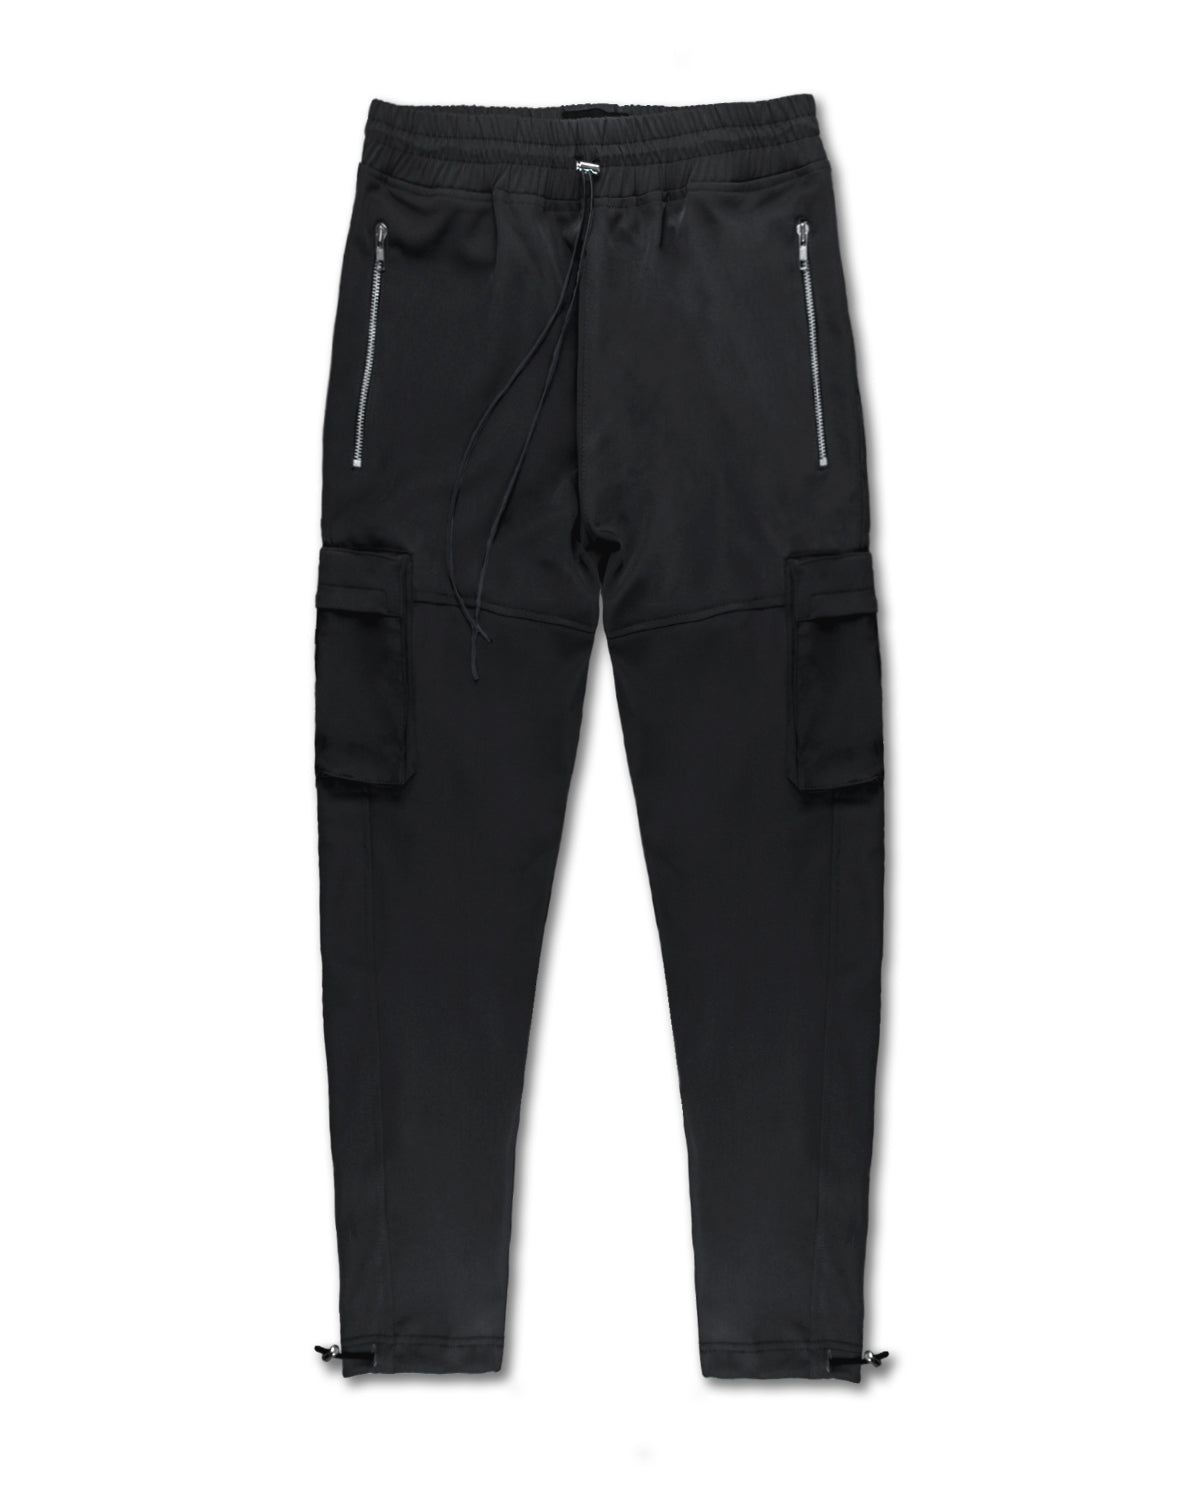 Nomad Puller Pants - Black